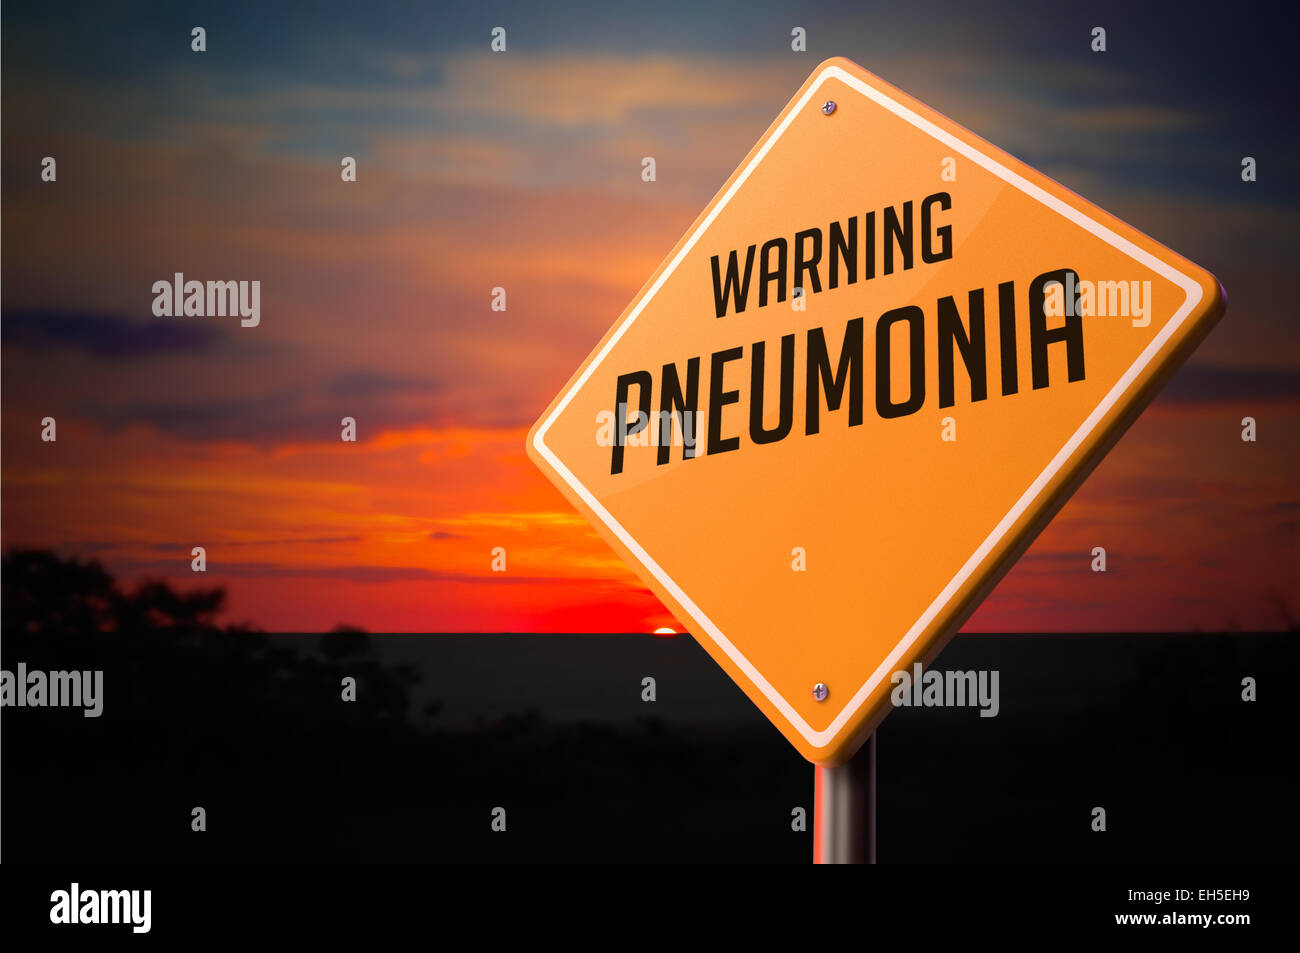 Pneumonia on Warning Road Sign on Sunset Sky Background. - Stock Image